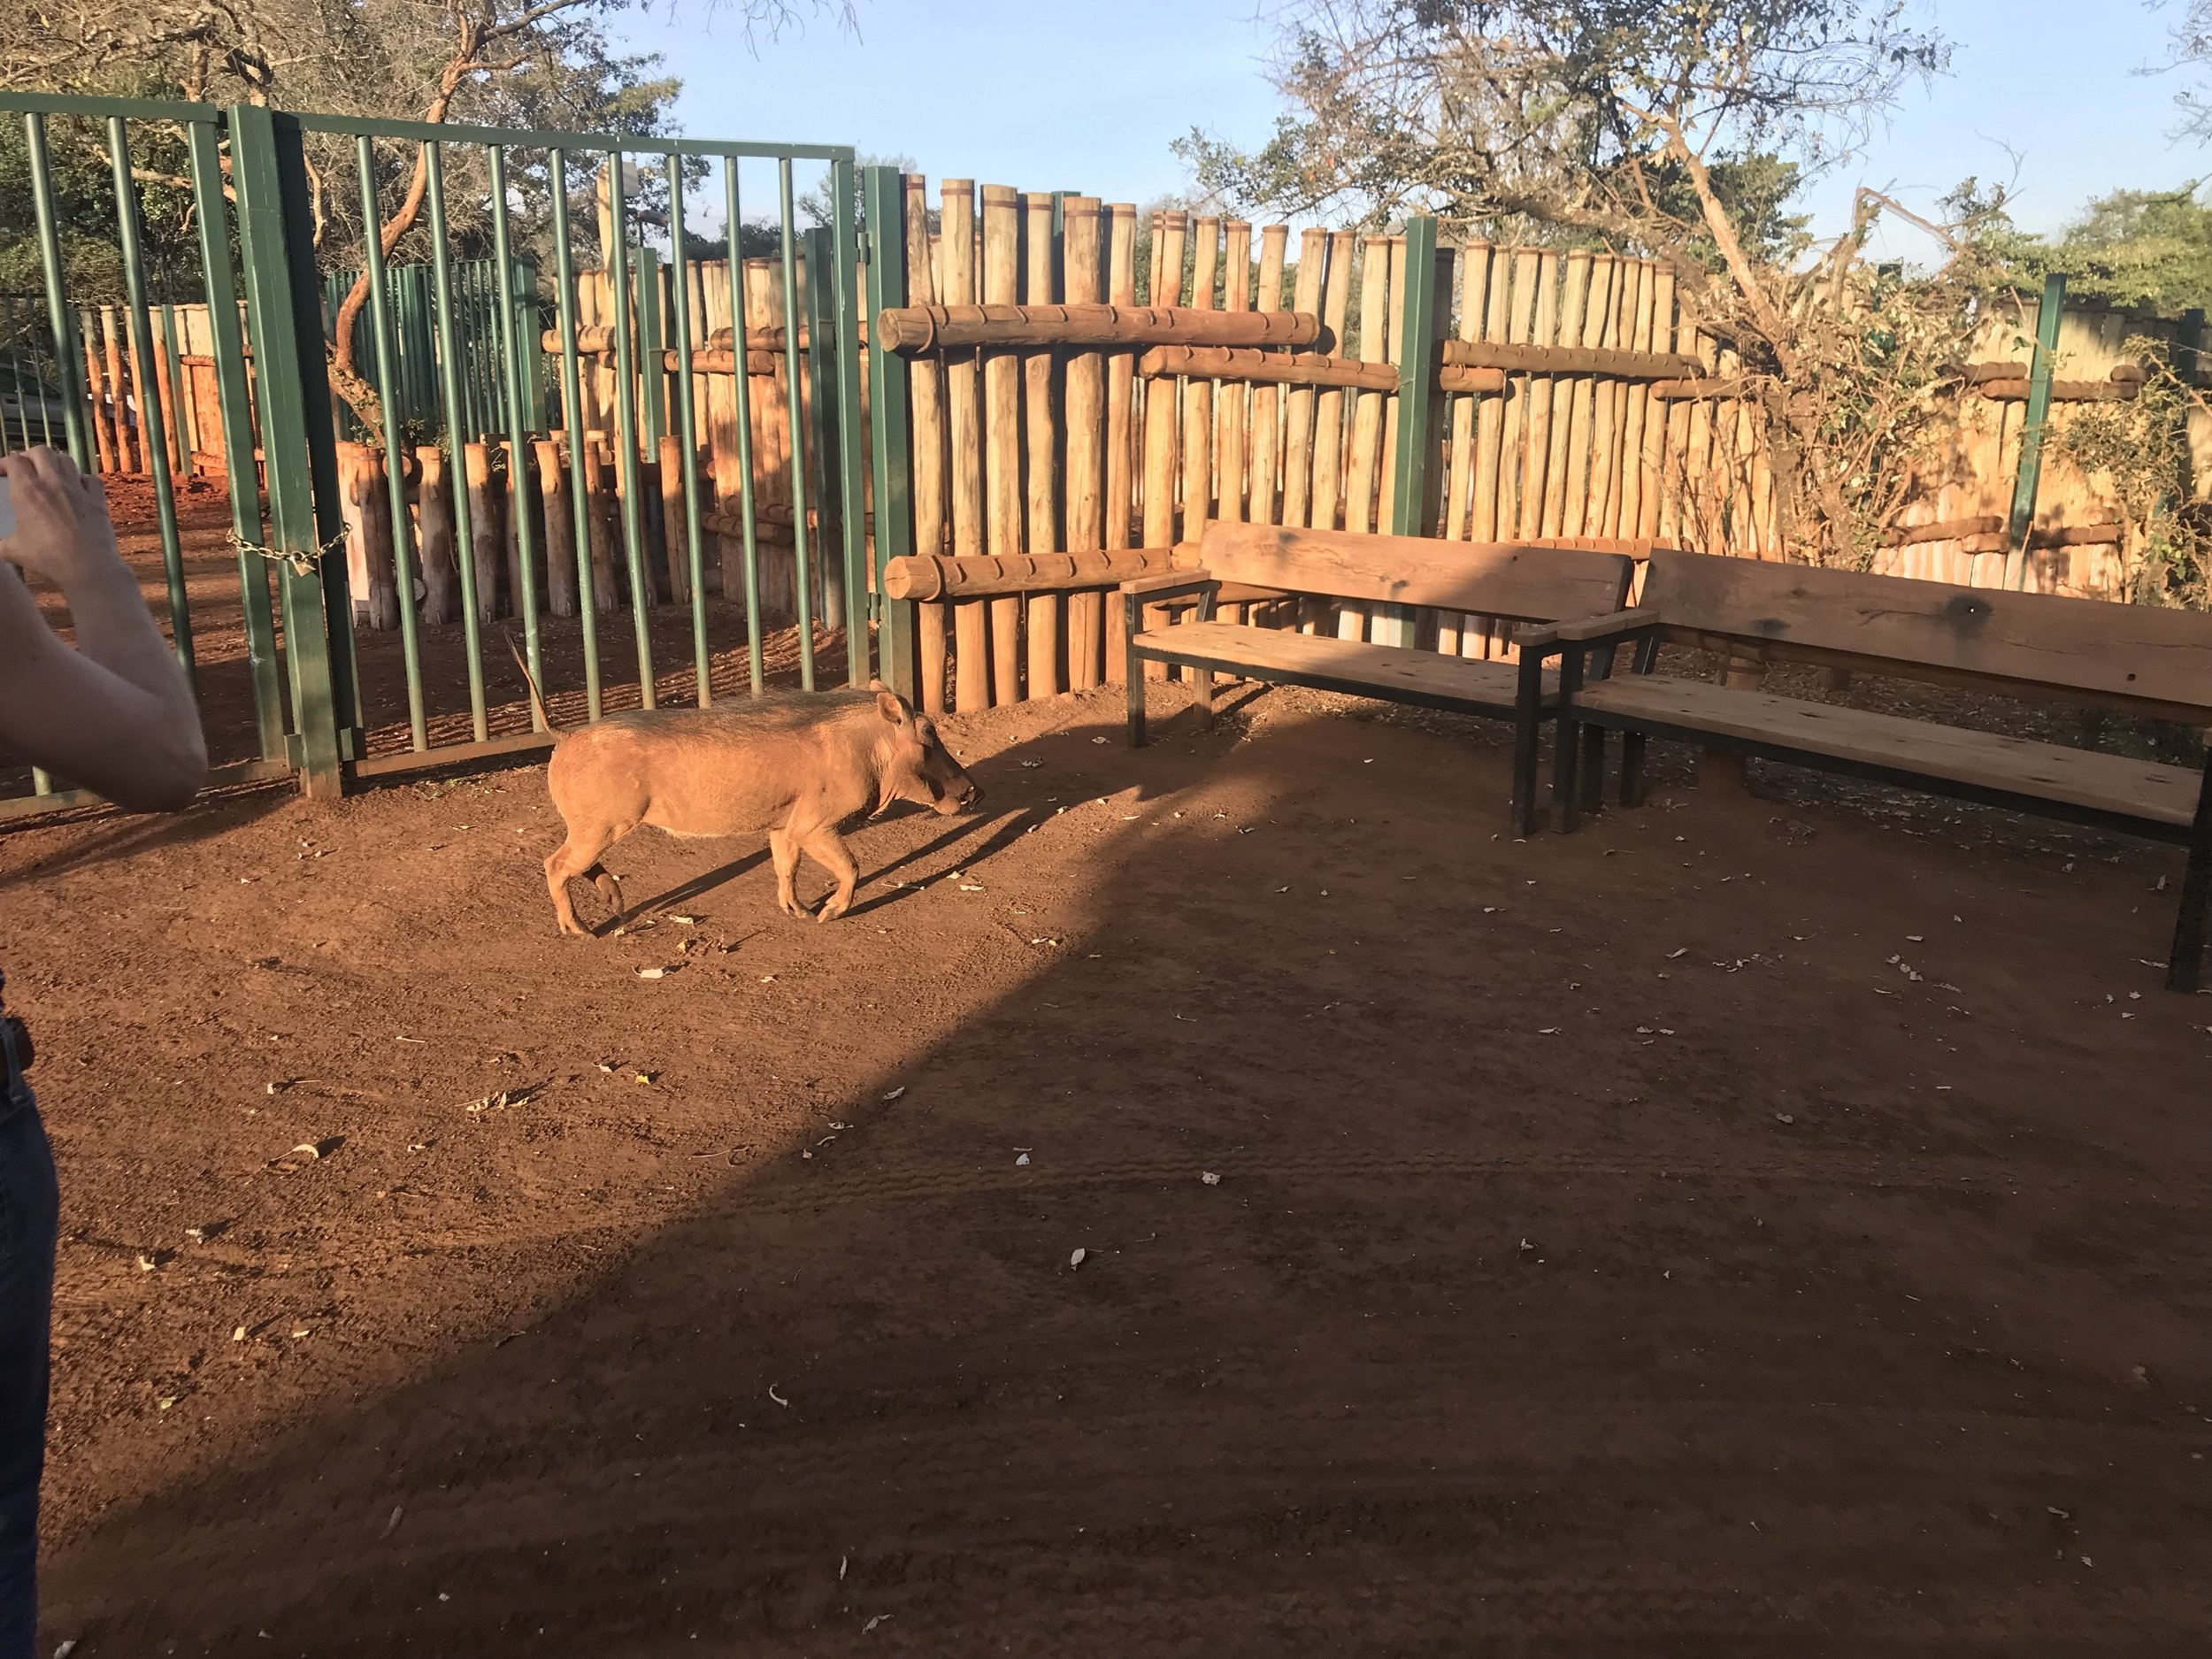 There were warthogs wandering the property as well, and they left us alone for the most part. For some reason I was expecting them to be aggressive like wild hogs that I know live in the US but they were not.